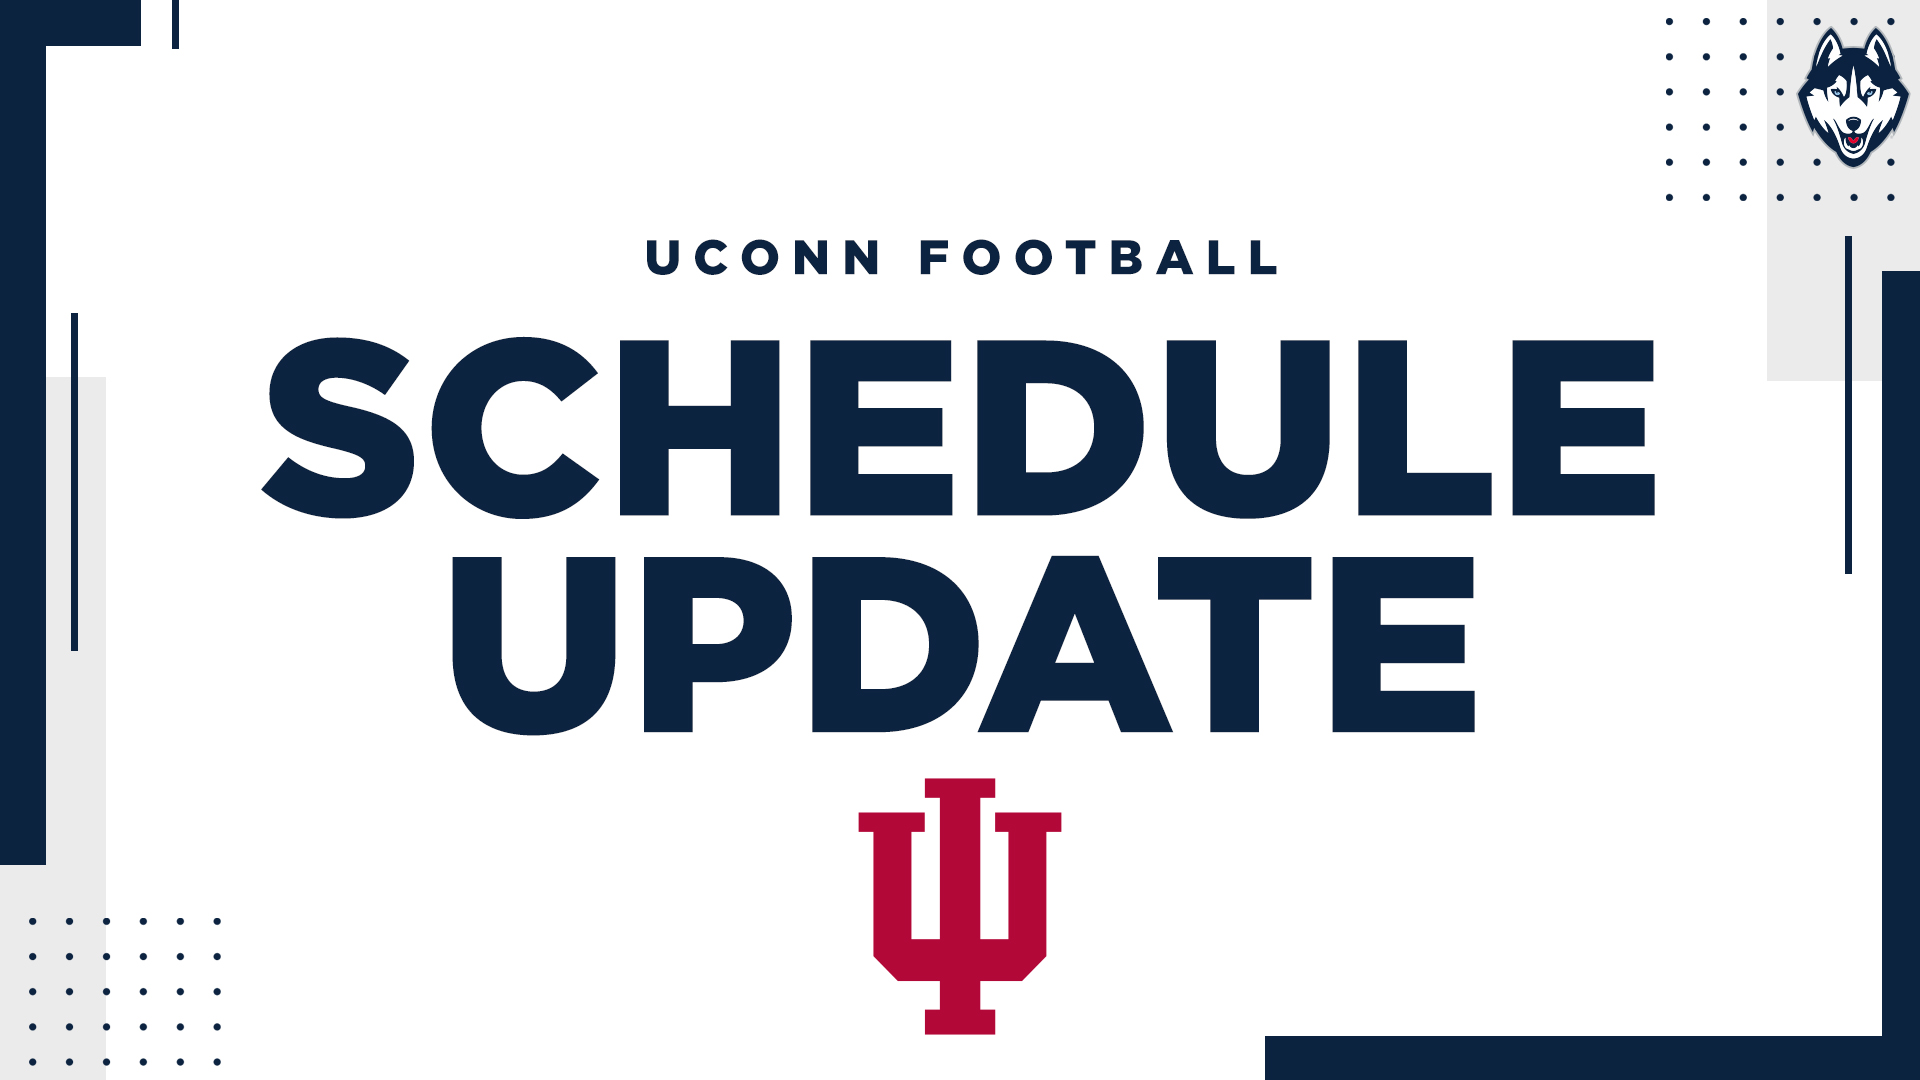 Uconn Calendar Spring 2022.Uconn Football Reschedules Home Game With Indiana University Of Connecticut Athletics